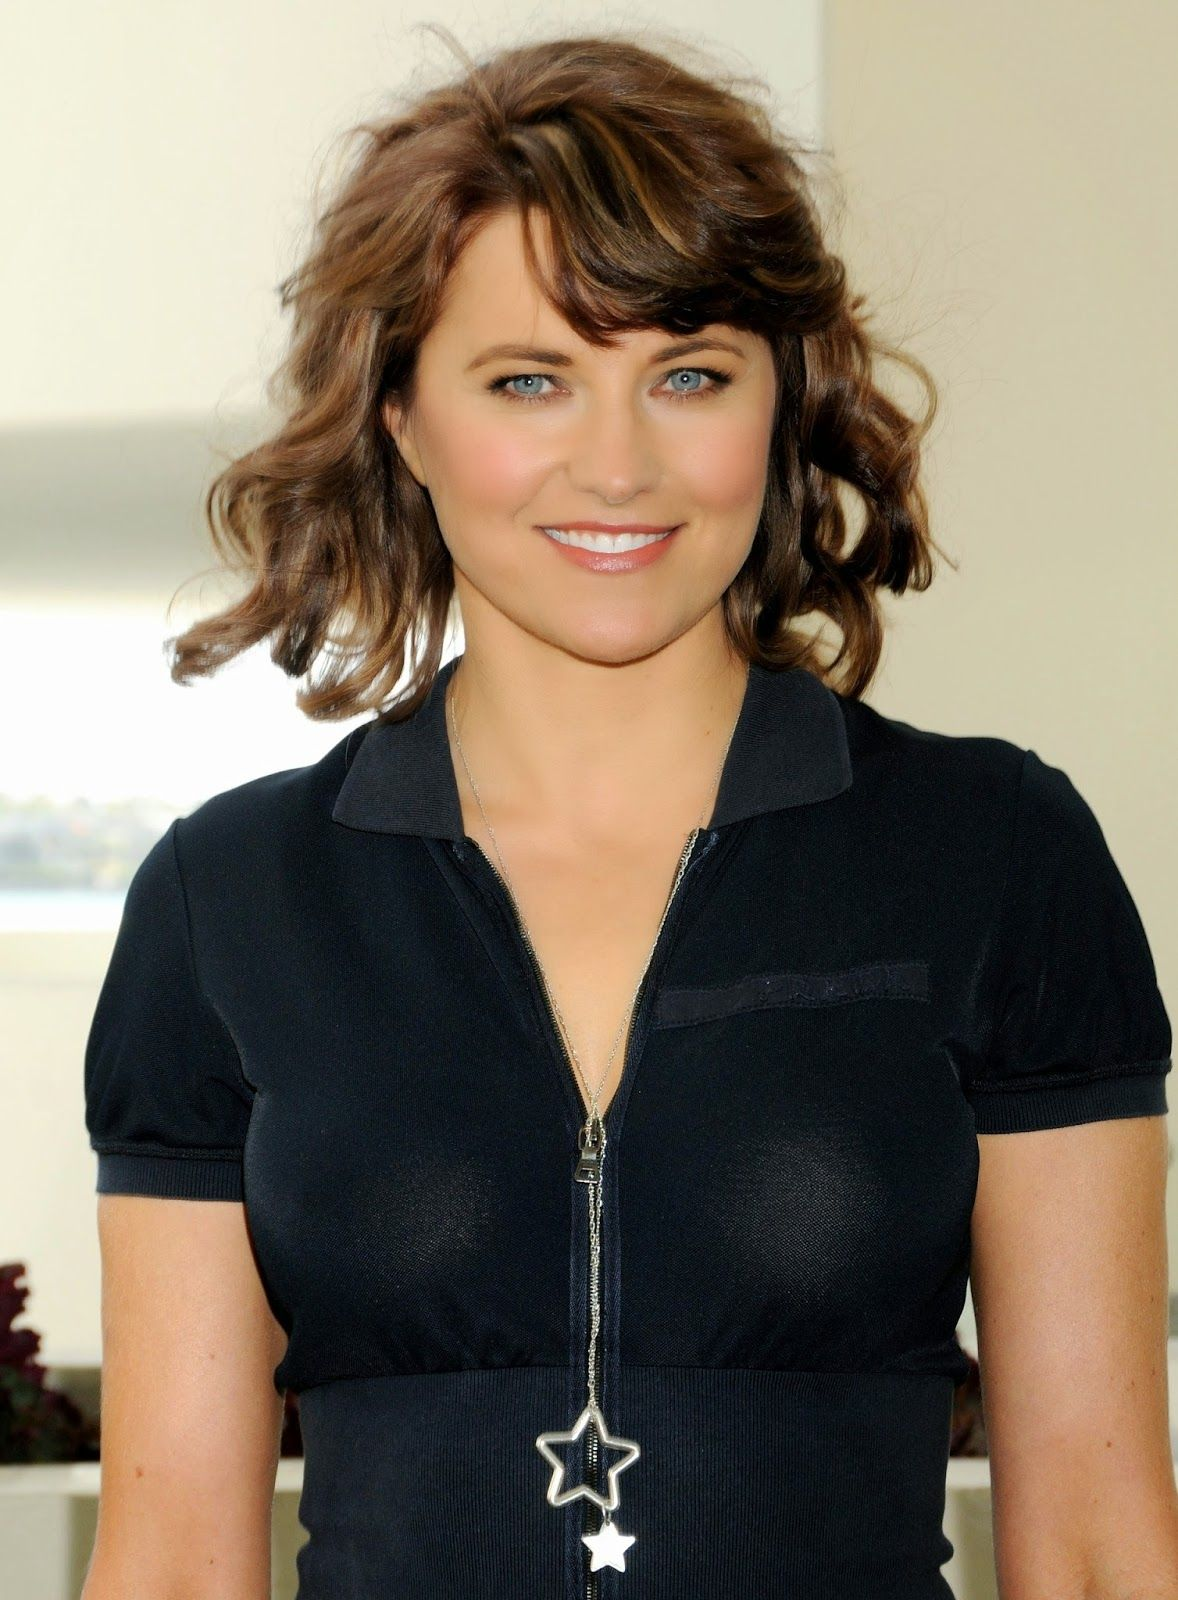 Lucy lawless see through photos nudes (42 photo), Sexy Celebrity photos